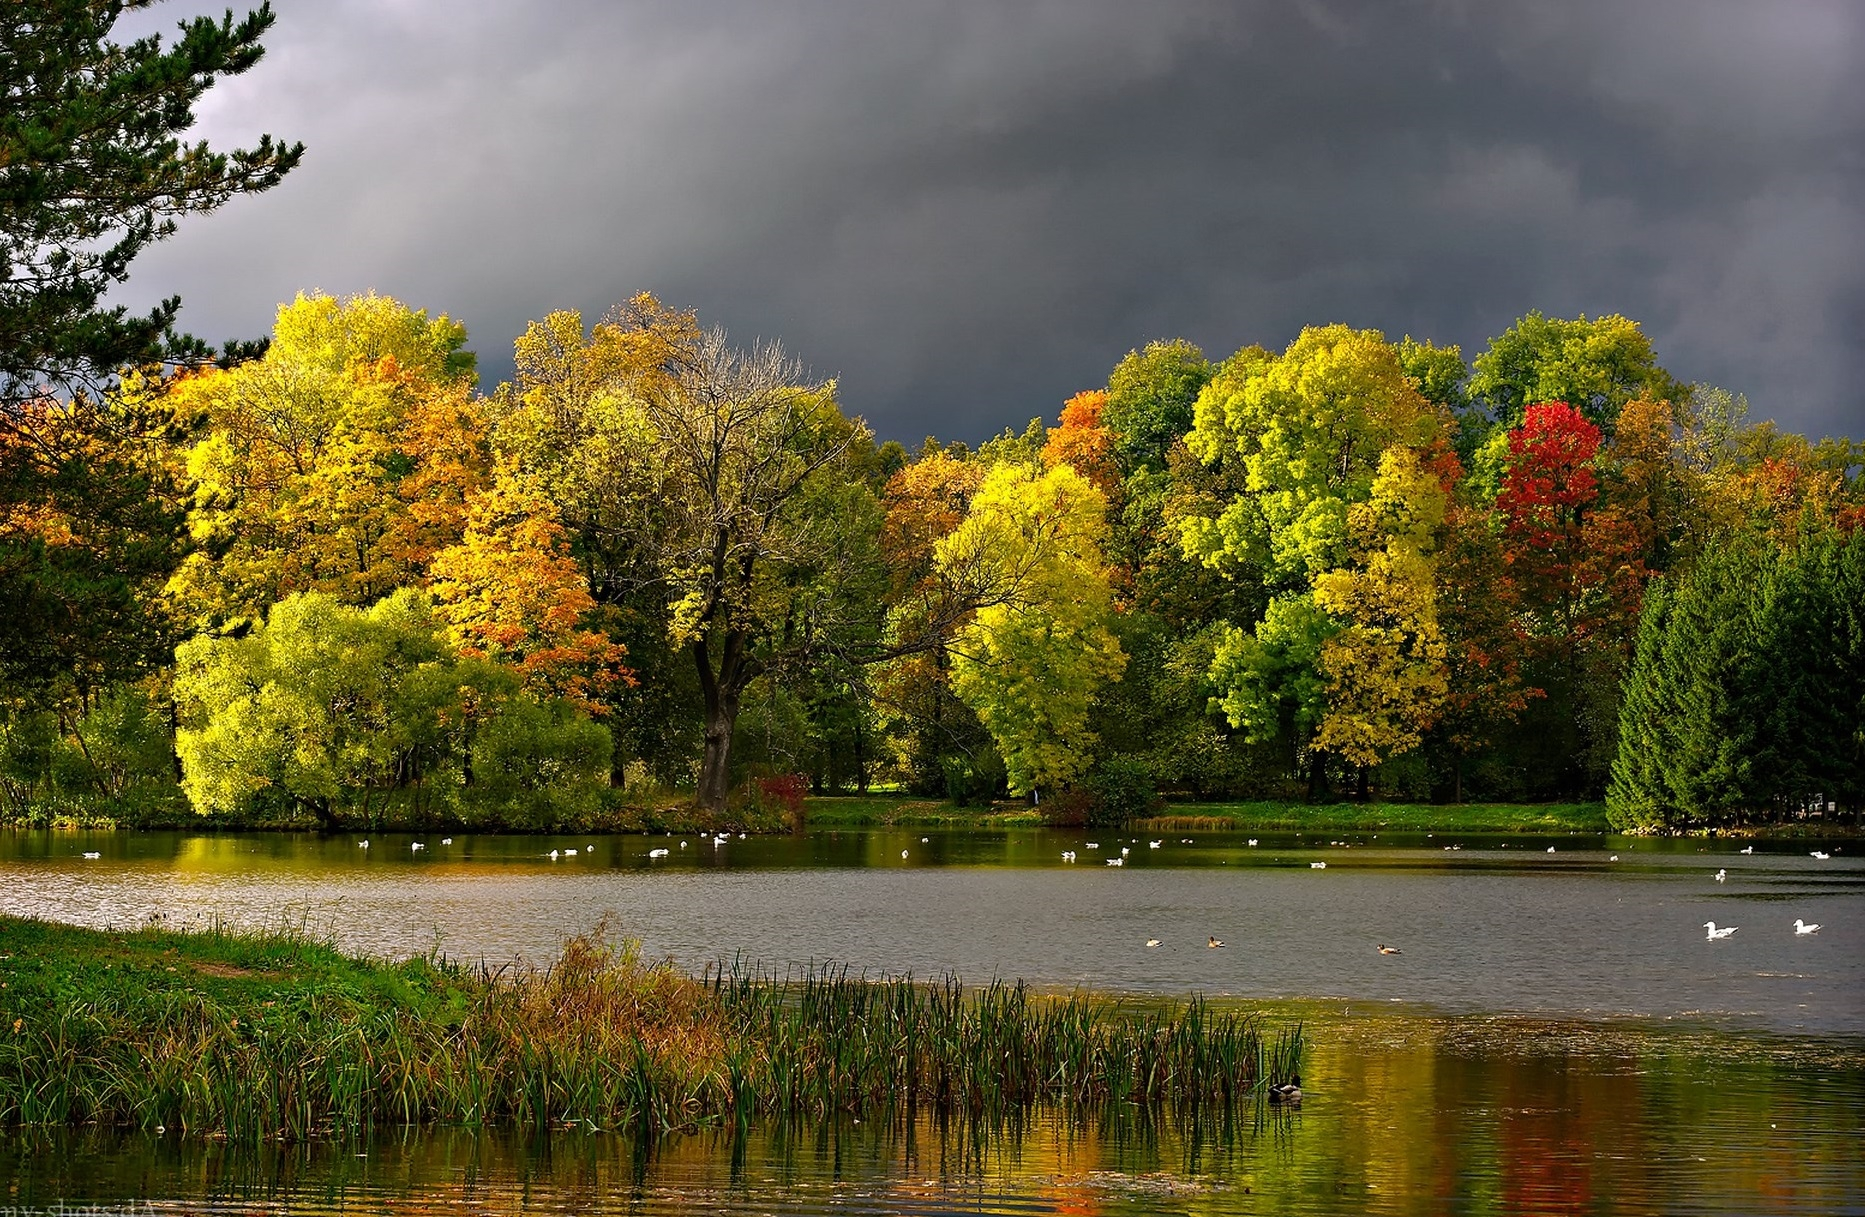 97474 download wallpaper Nature, Autumn, Clouds, Pond, Landscape, Seagulls screensavers and pictures for free